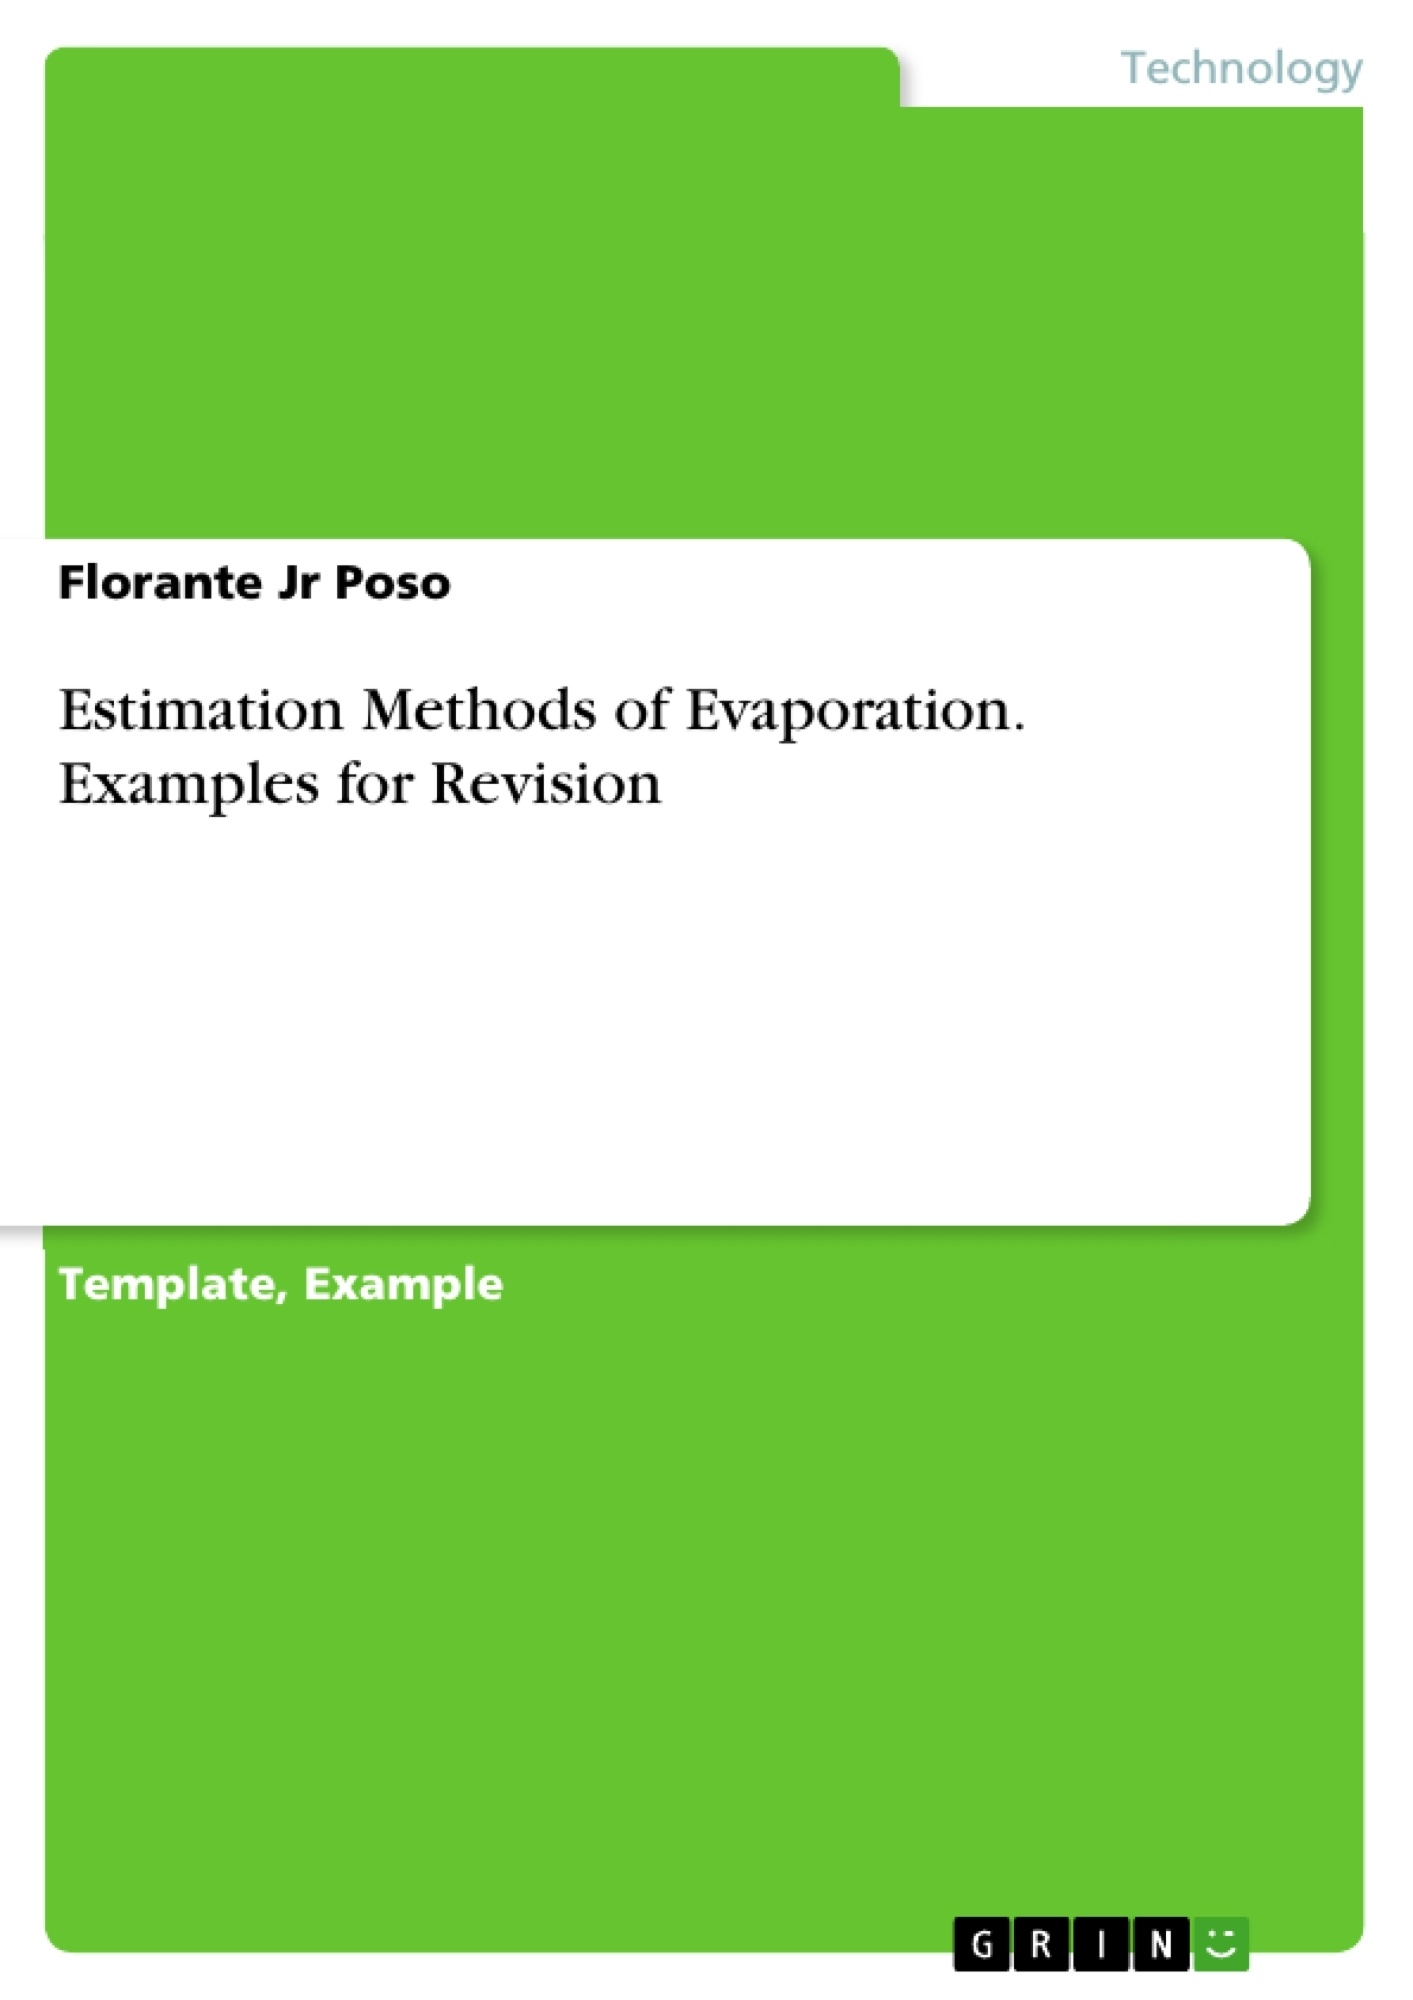 Title: Estimation Methods of Evaporation. Examples for Revision